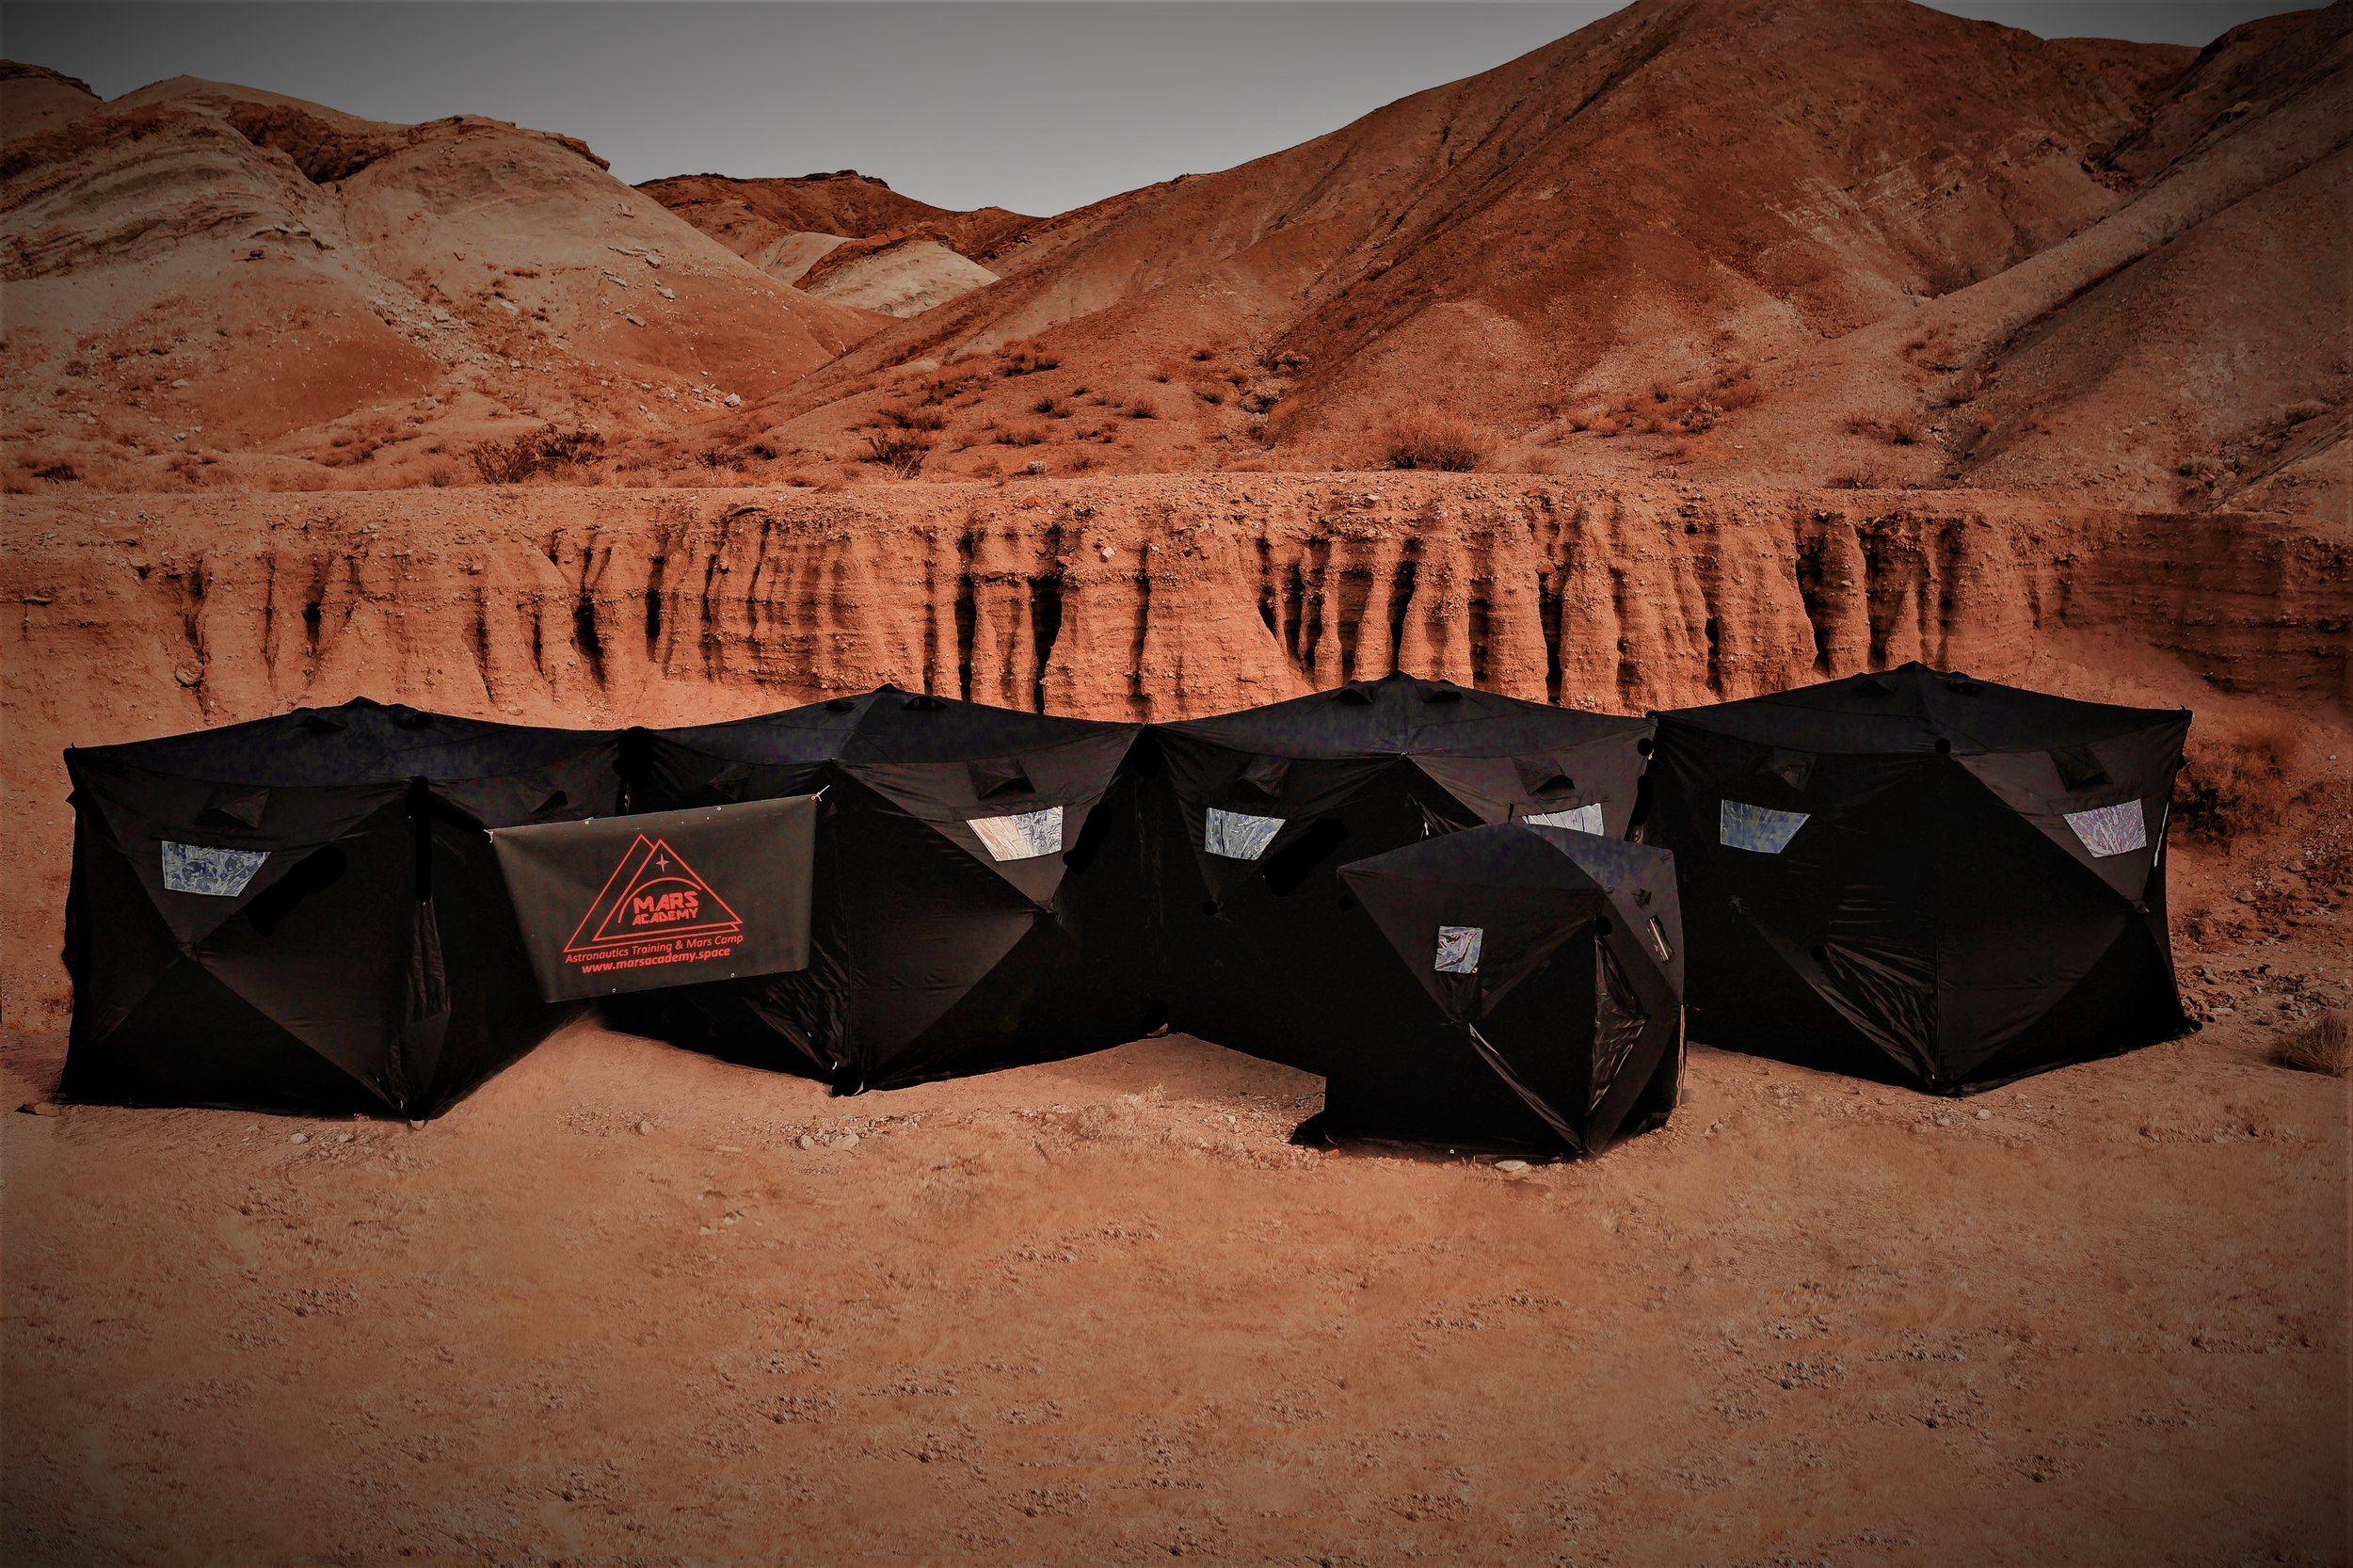 Section of the MAU Mars Basecamp in dueing an analog astroanut training mission in the isolated Mojave Desert, CA